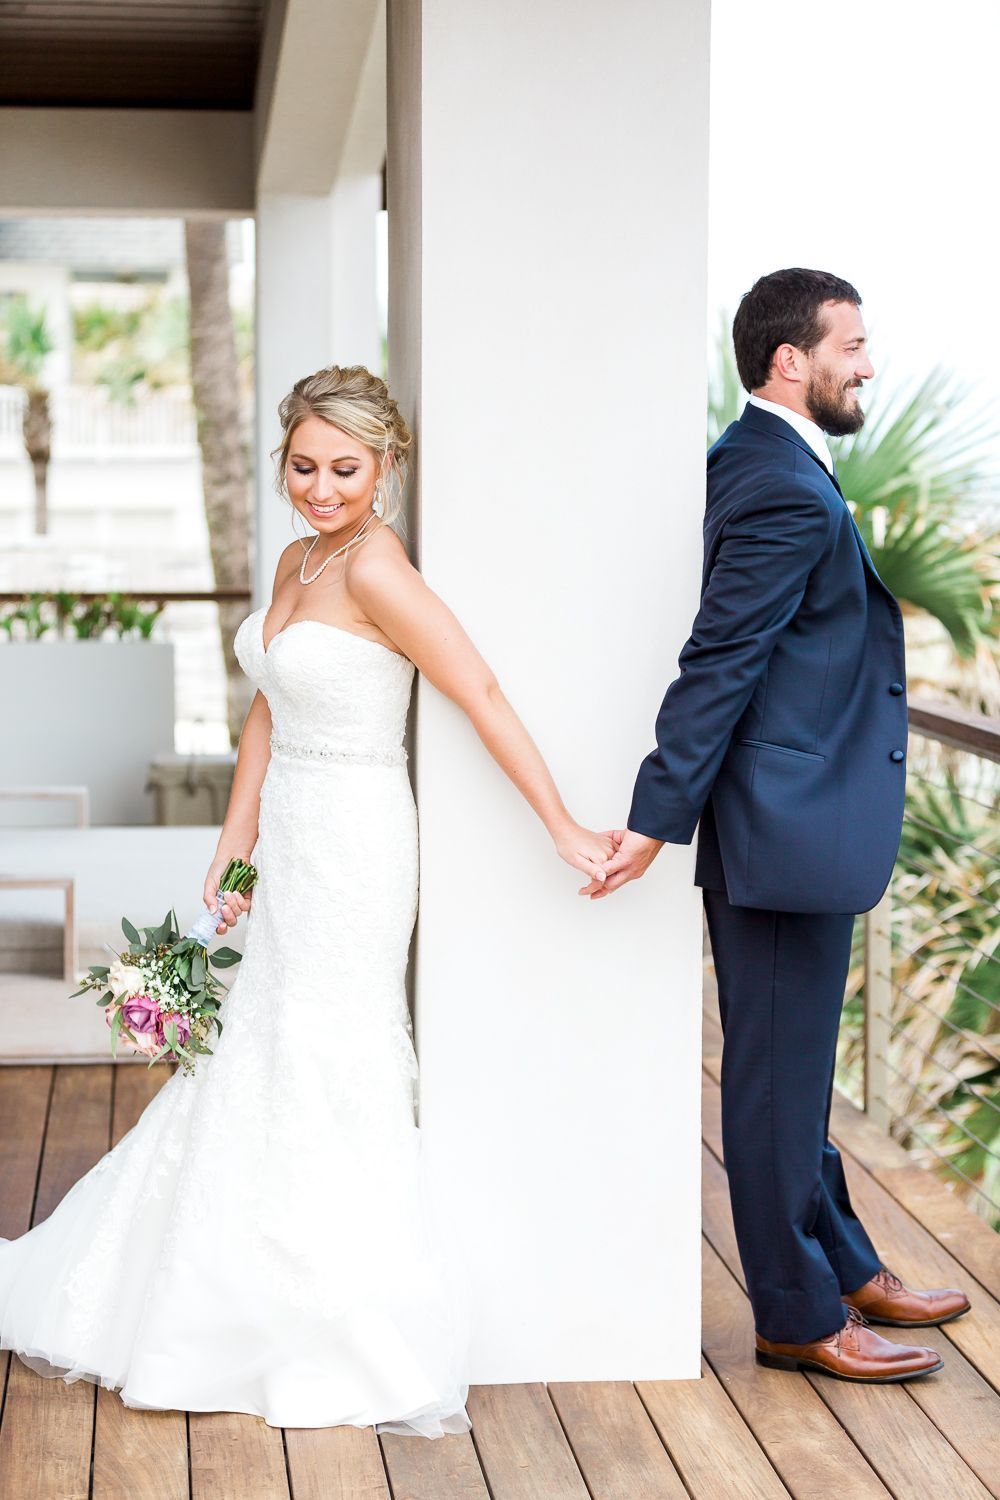 Beach wedding mother of the bride  First look picture ideas bride and groom holding hands without